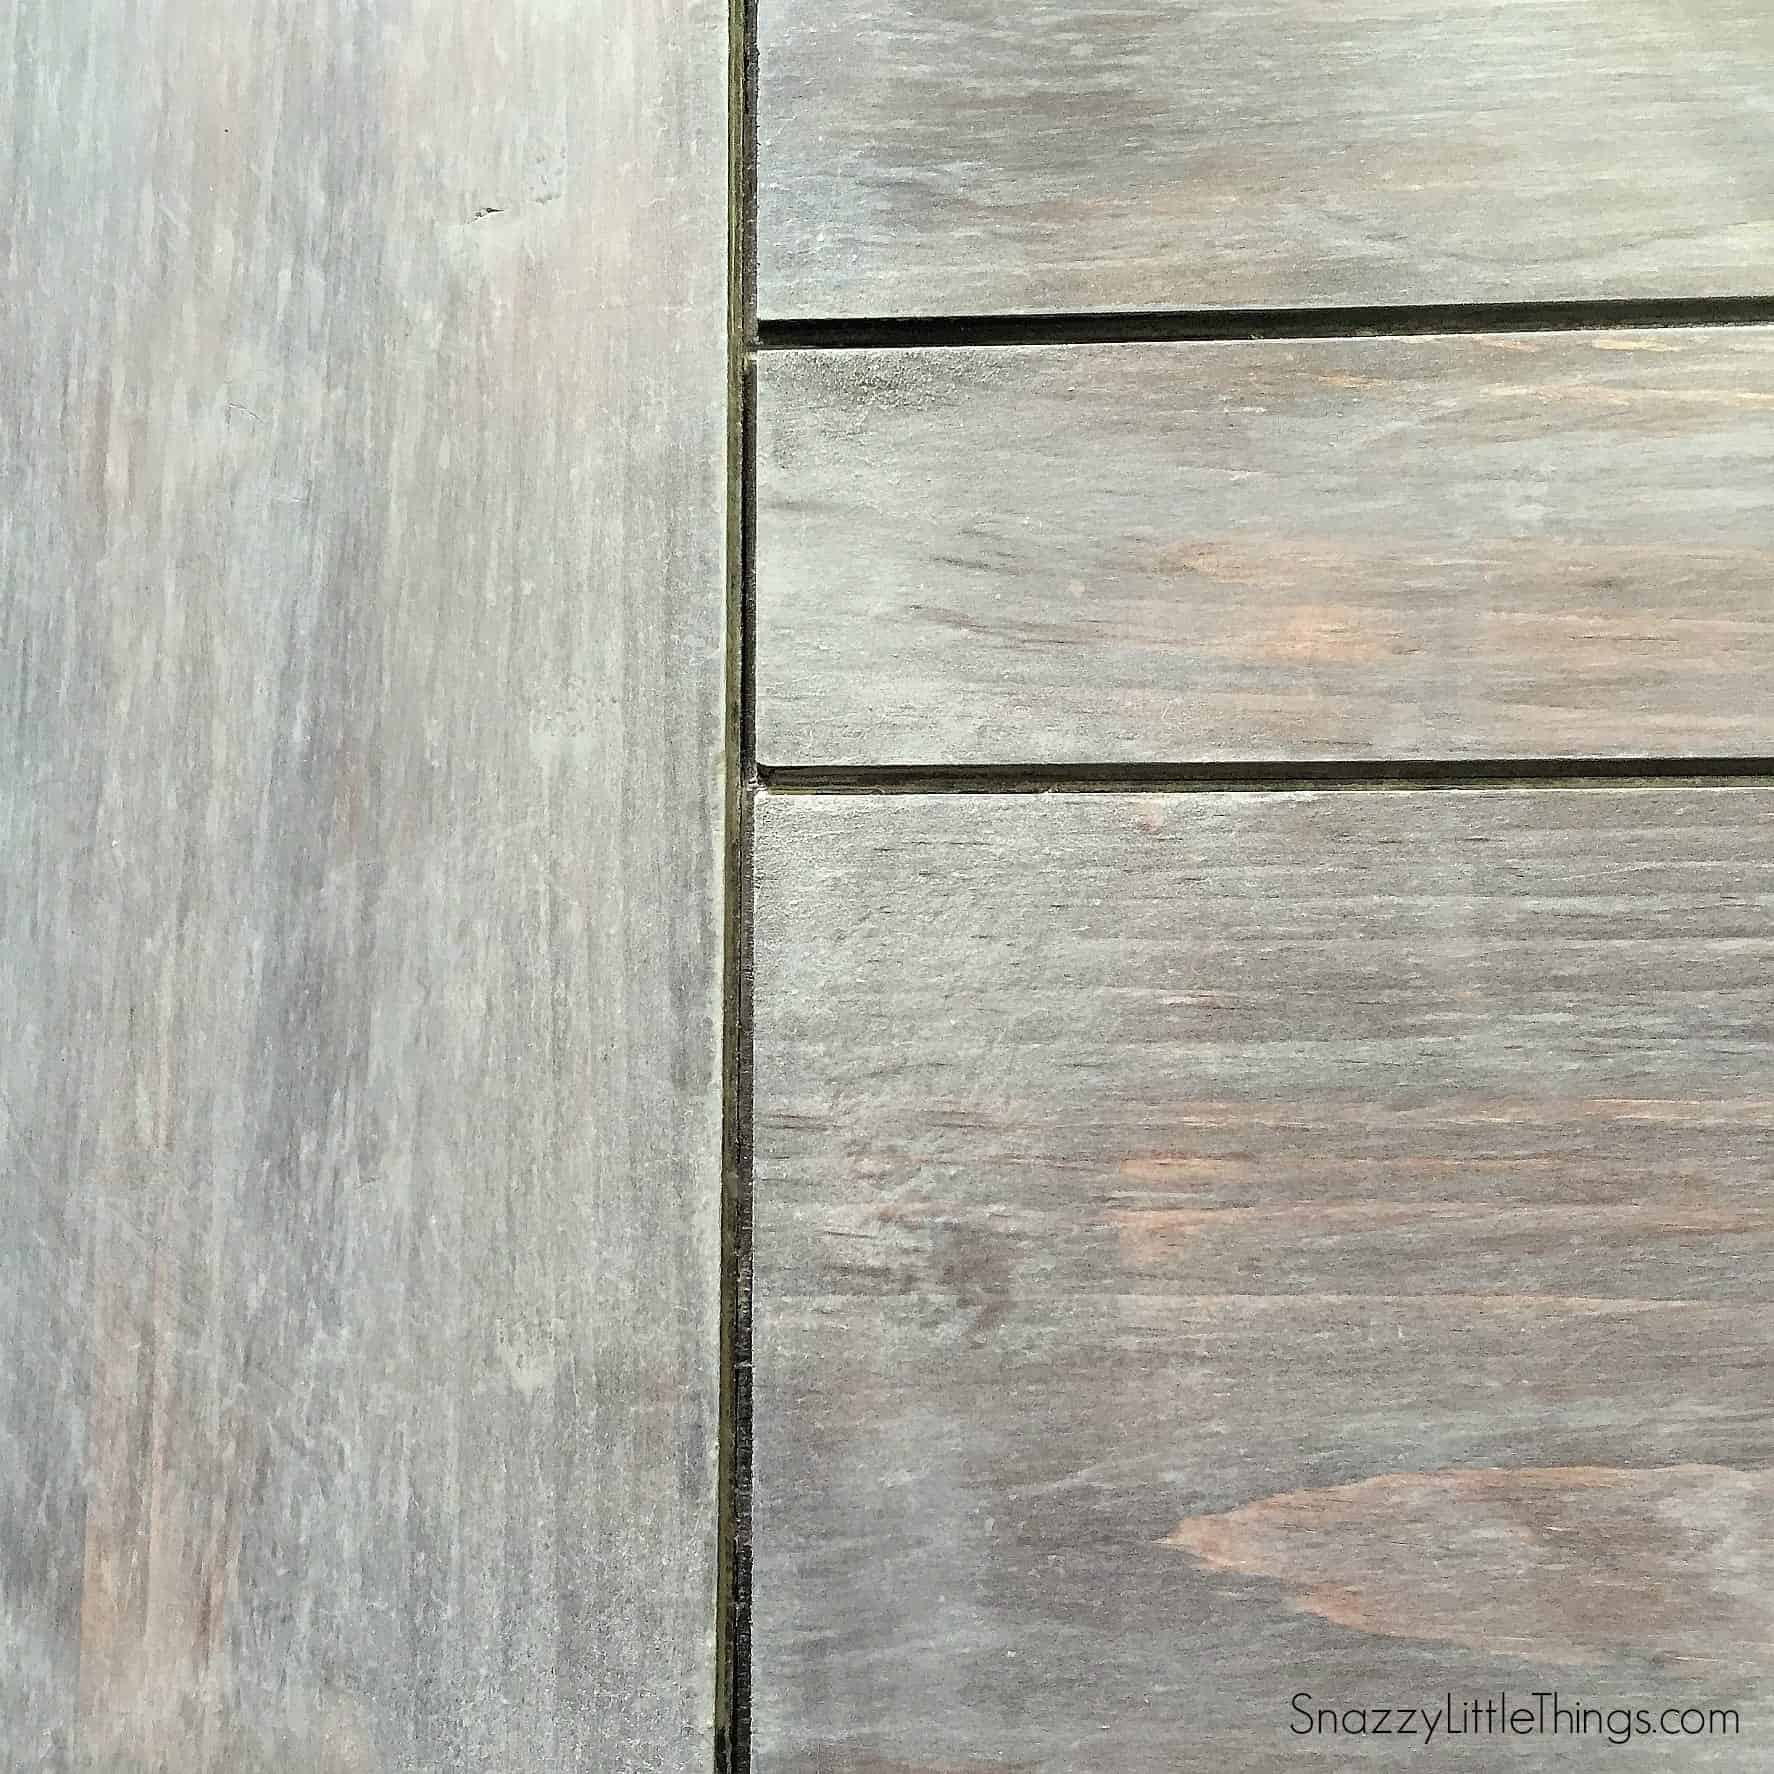 Rustoleum Driftwood Stain 3 Steps To Create A Durable Driftwood Finish